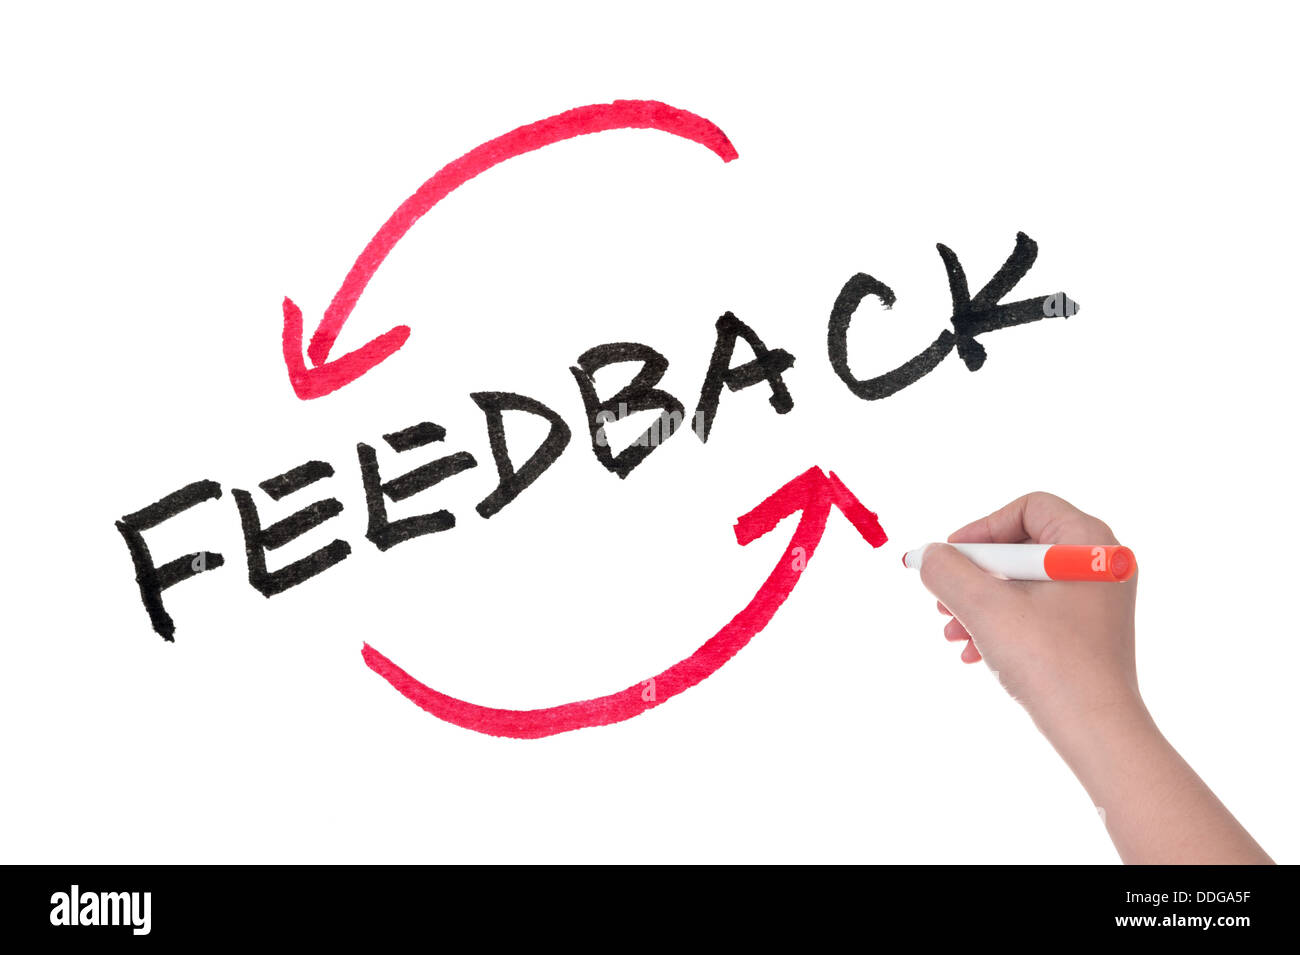 Feedback concept words written on white board - Stock Image